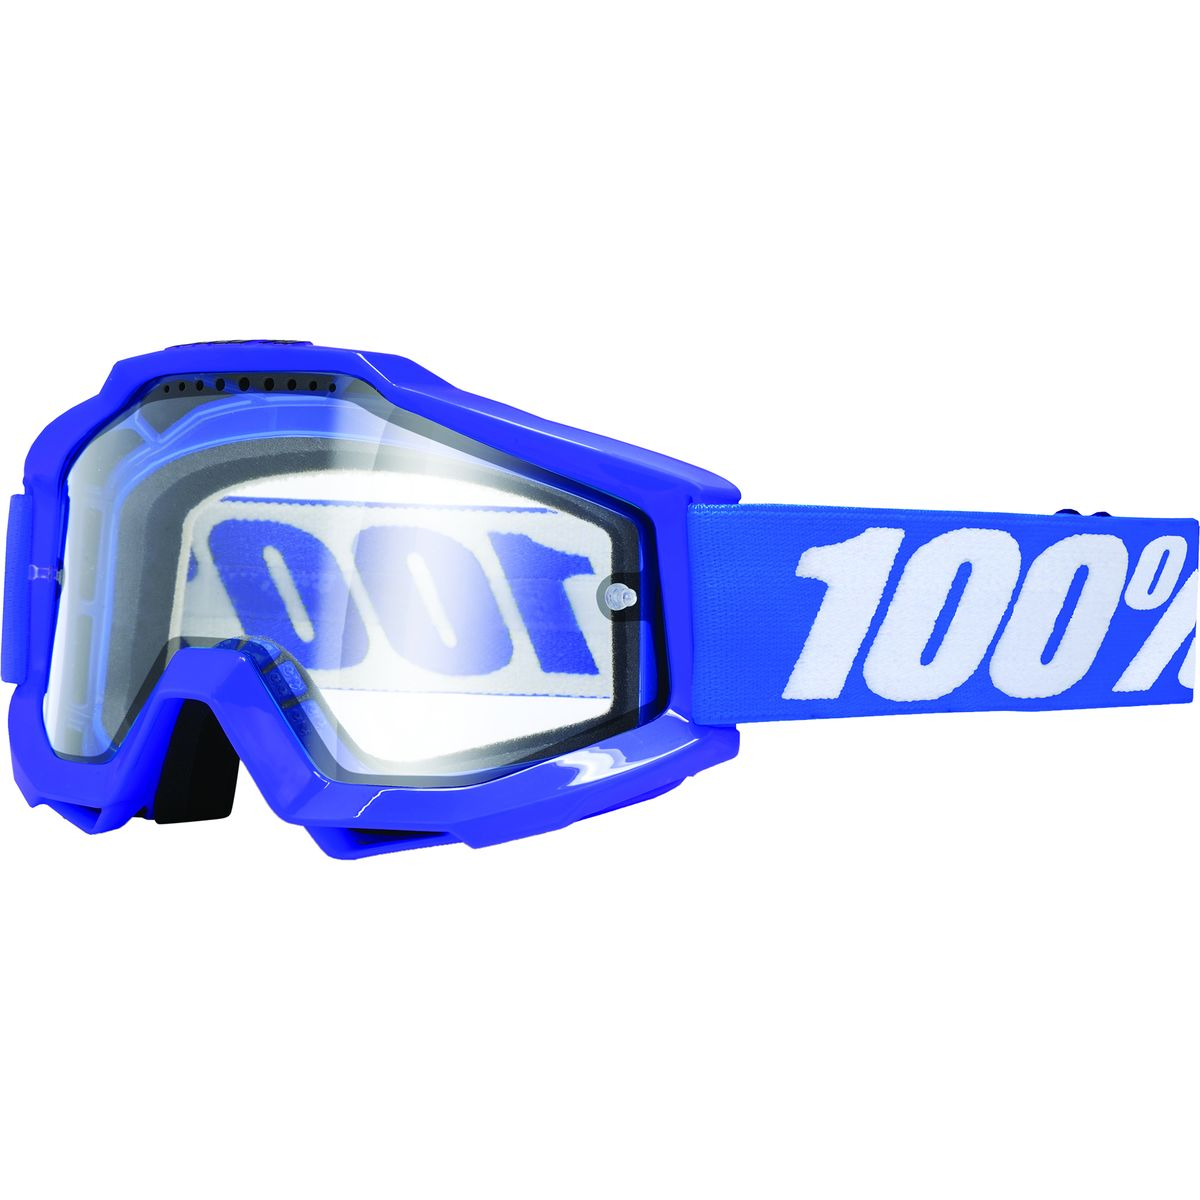 100 ACCURI Enduro Goggles Reflex Blue Clear Dual Lens One Size